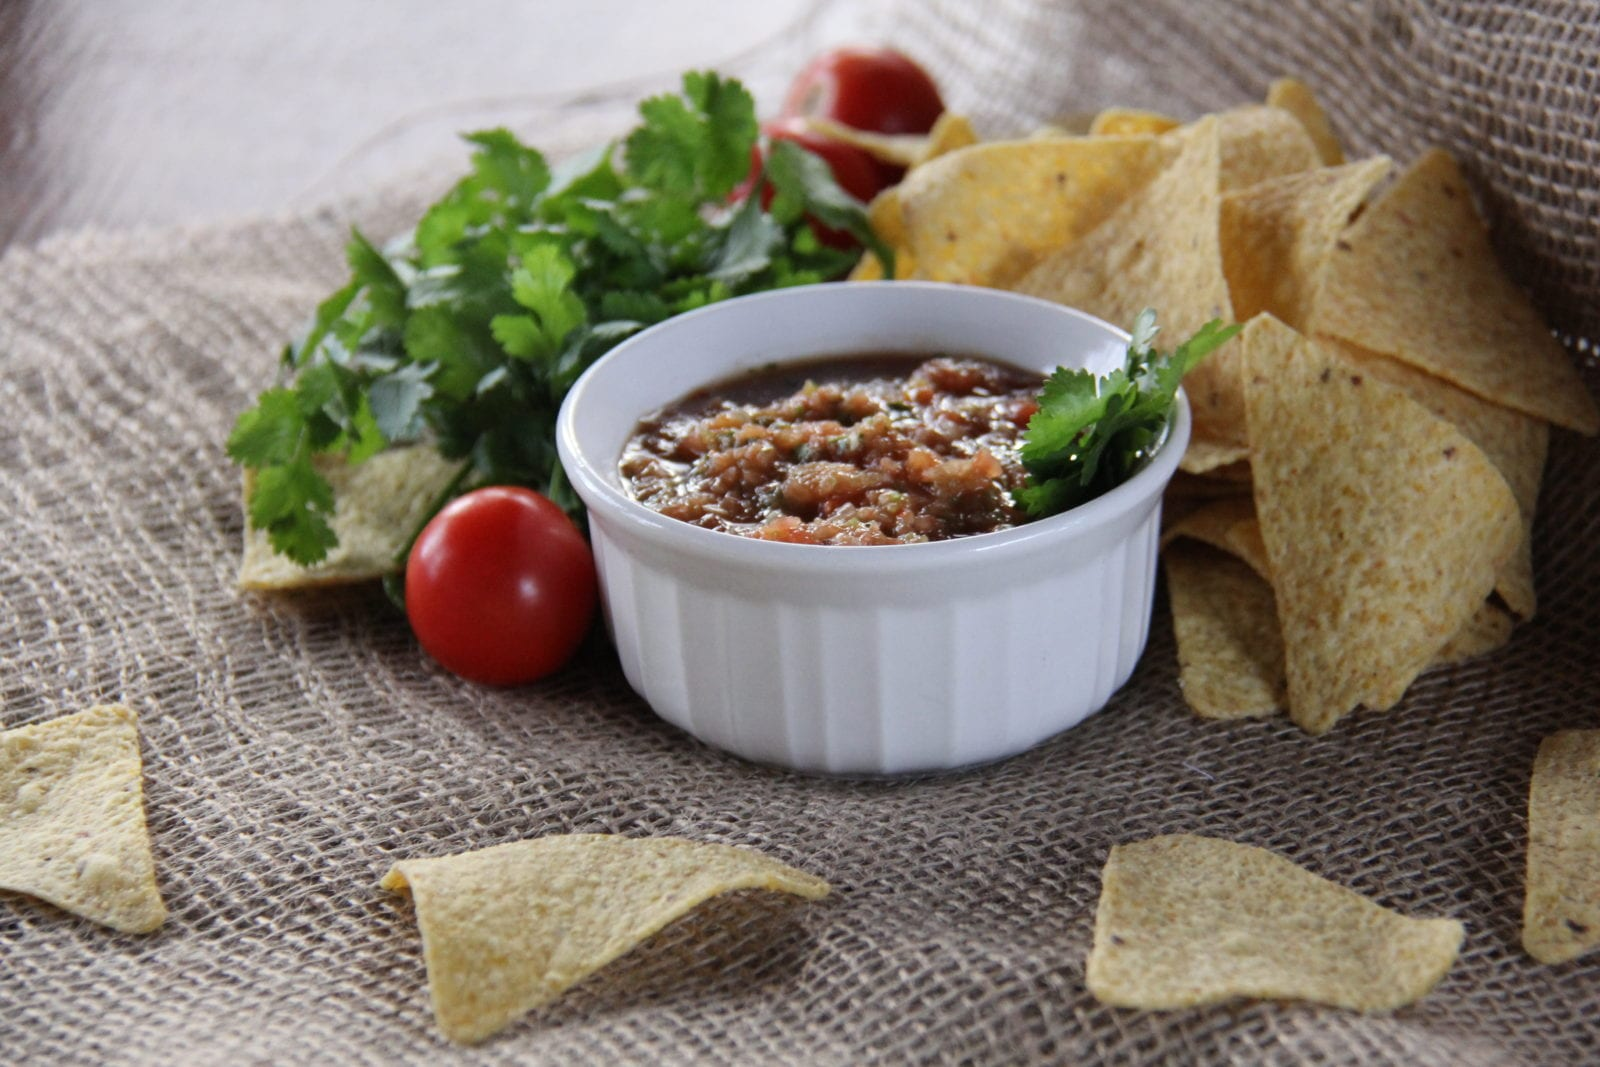 Road Warrior Creative Food Photography - Chips and Salsa